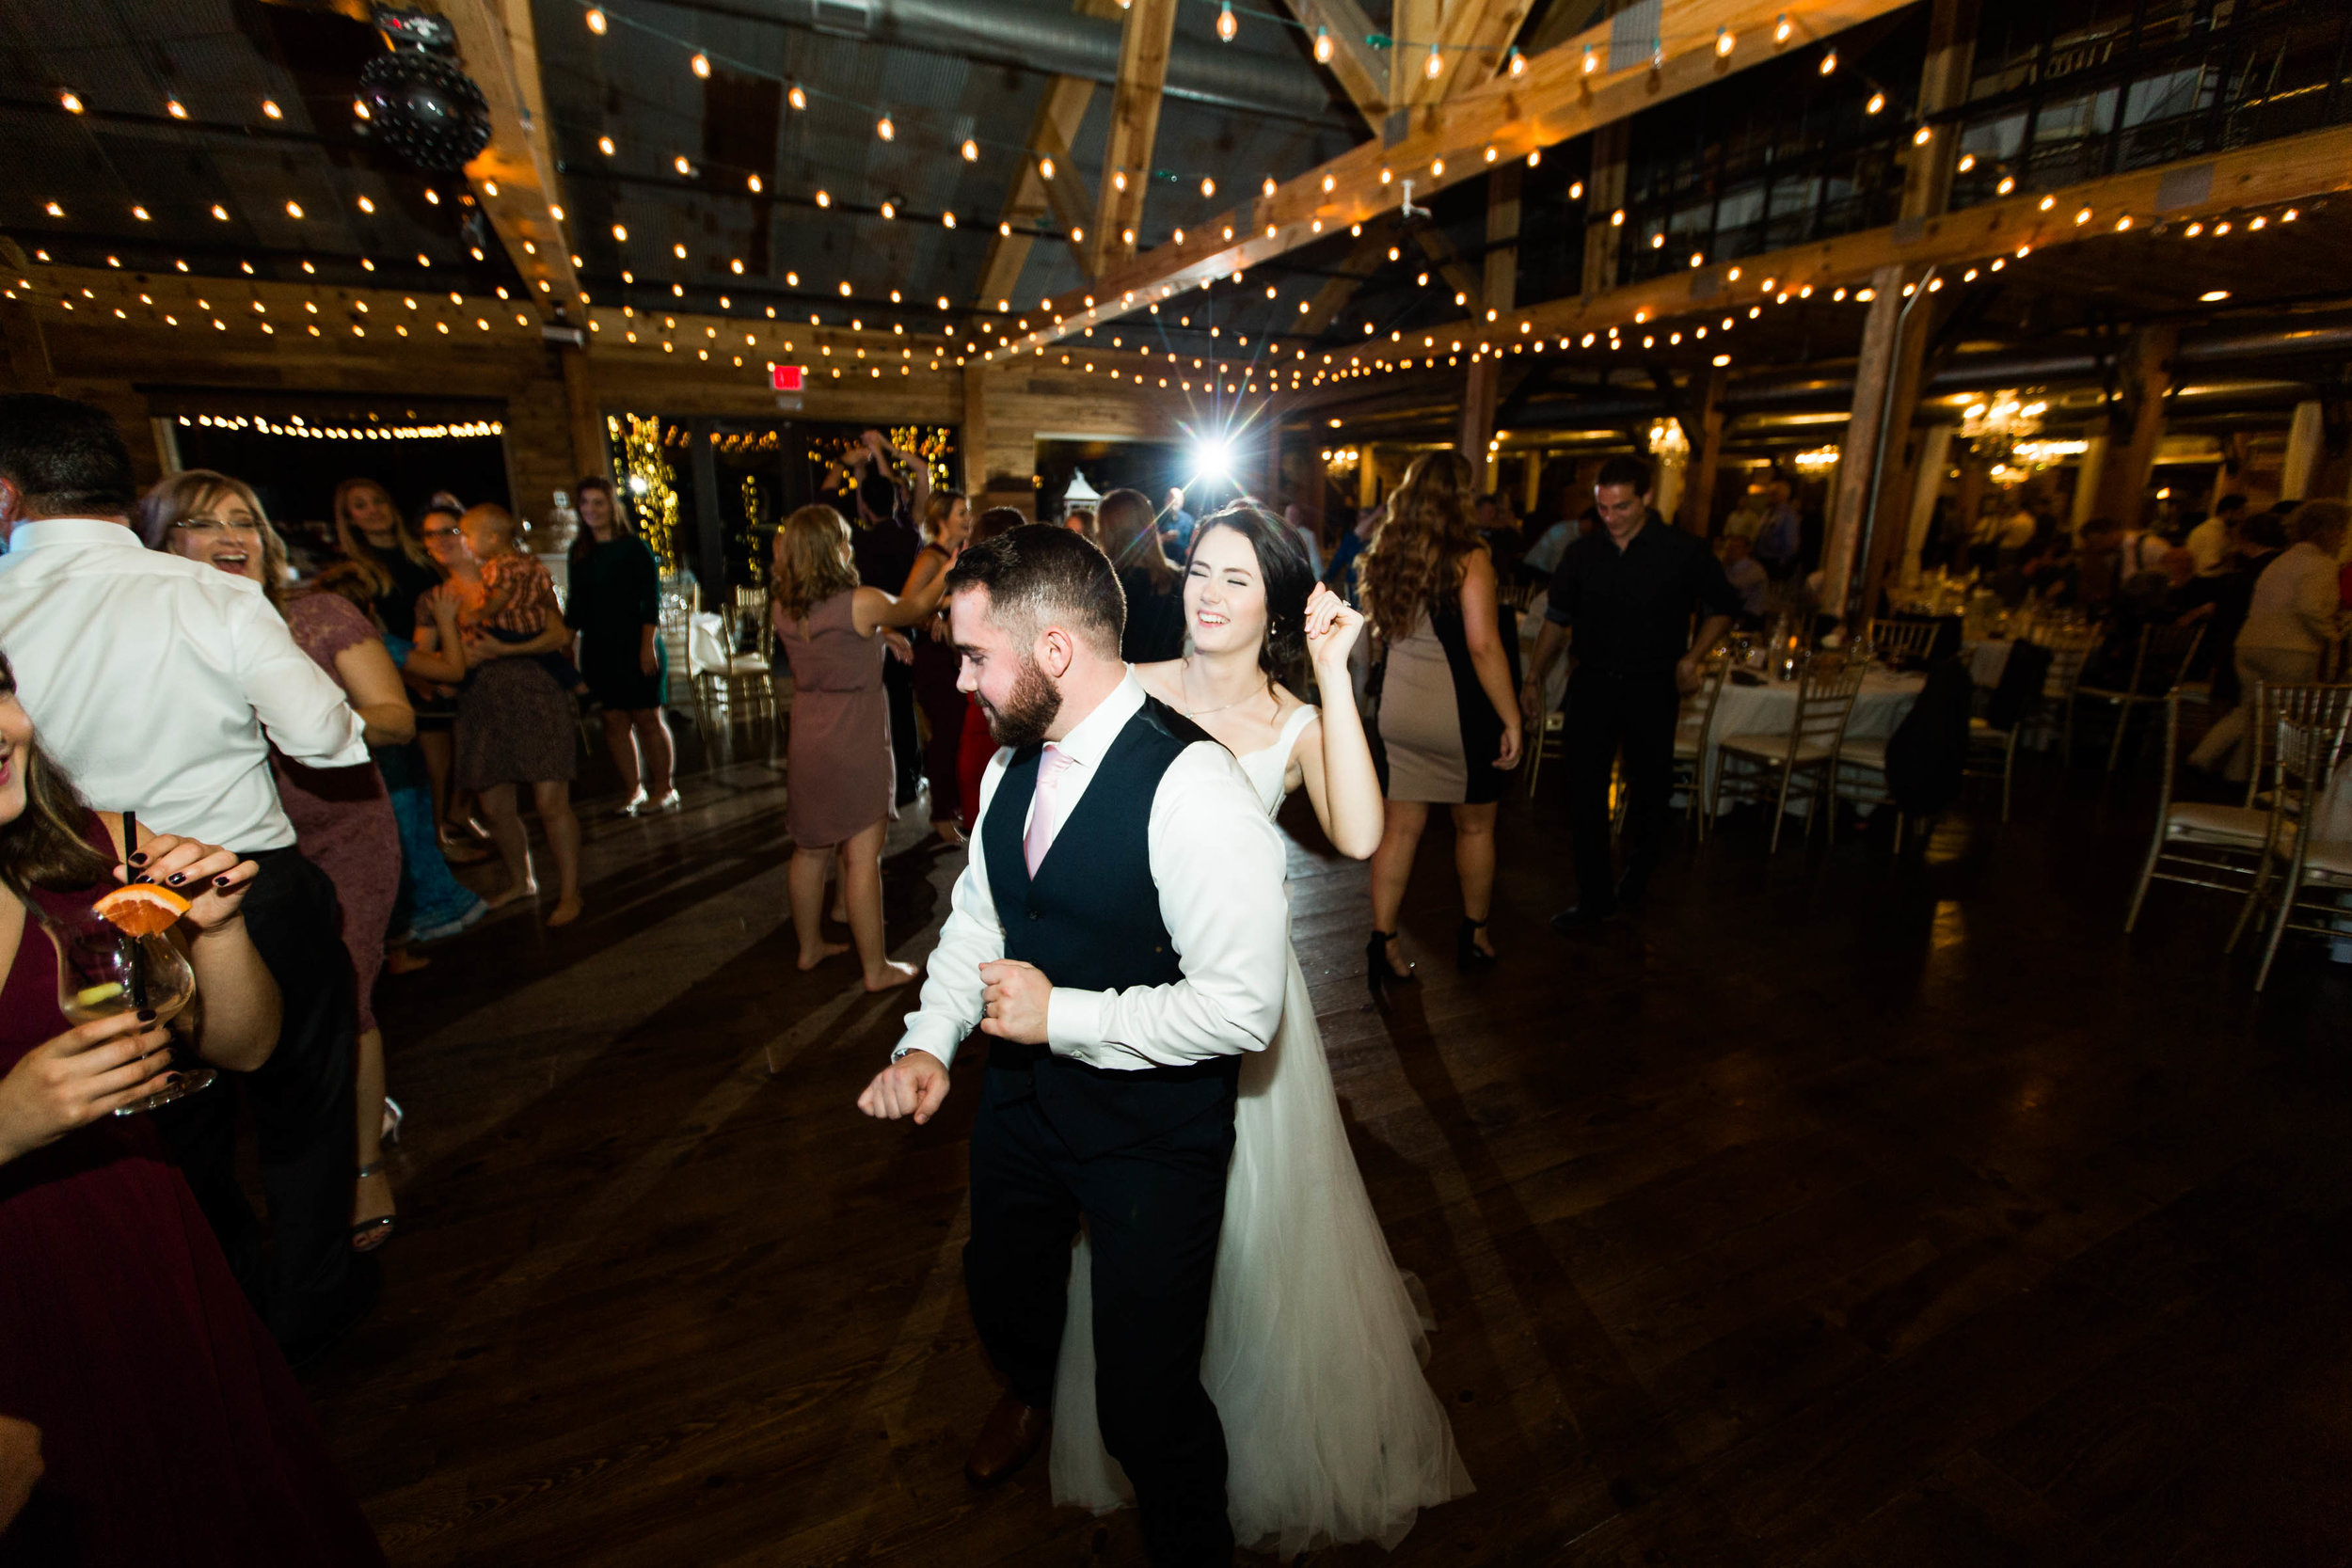 oklahoma_wedding_photographer_southwind_hills-73.jpg